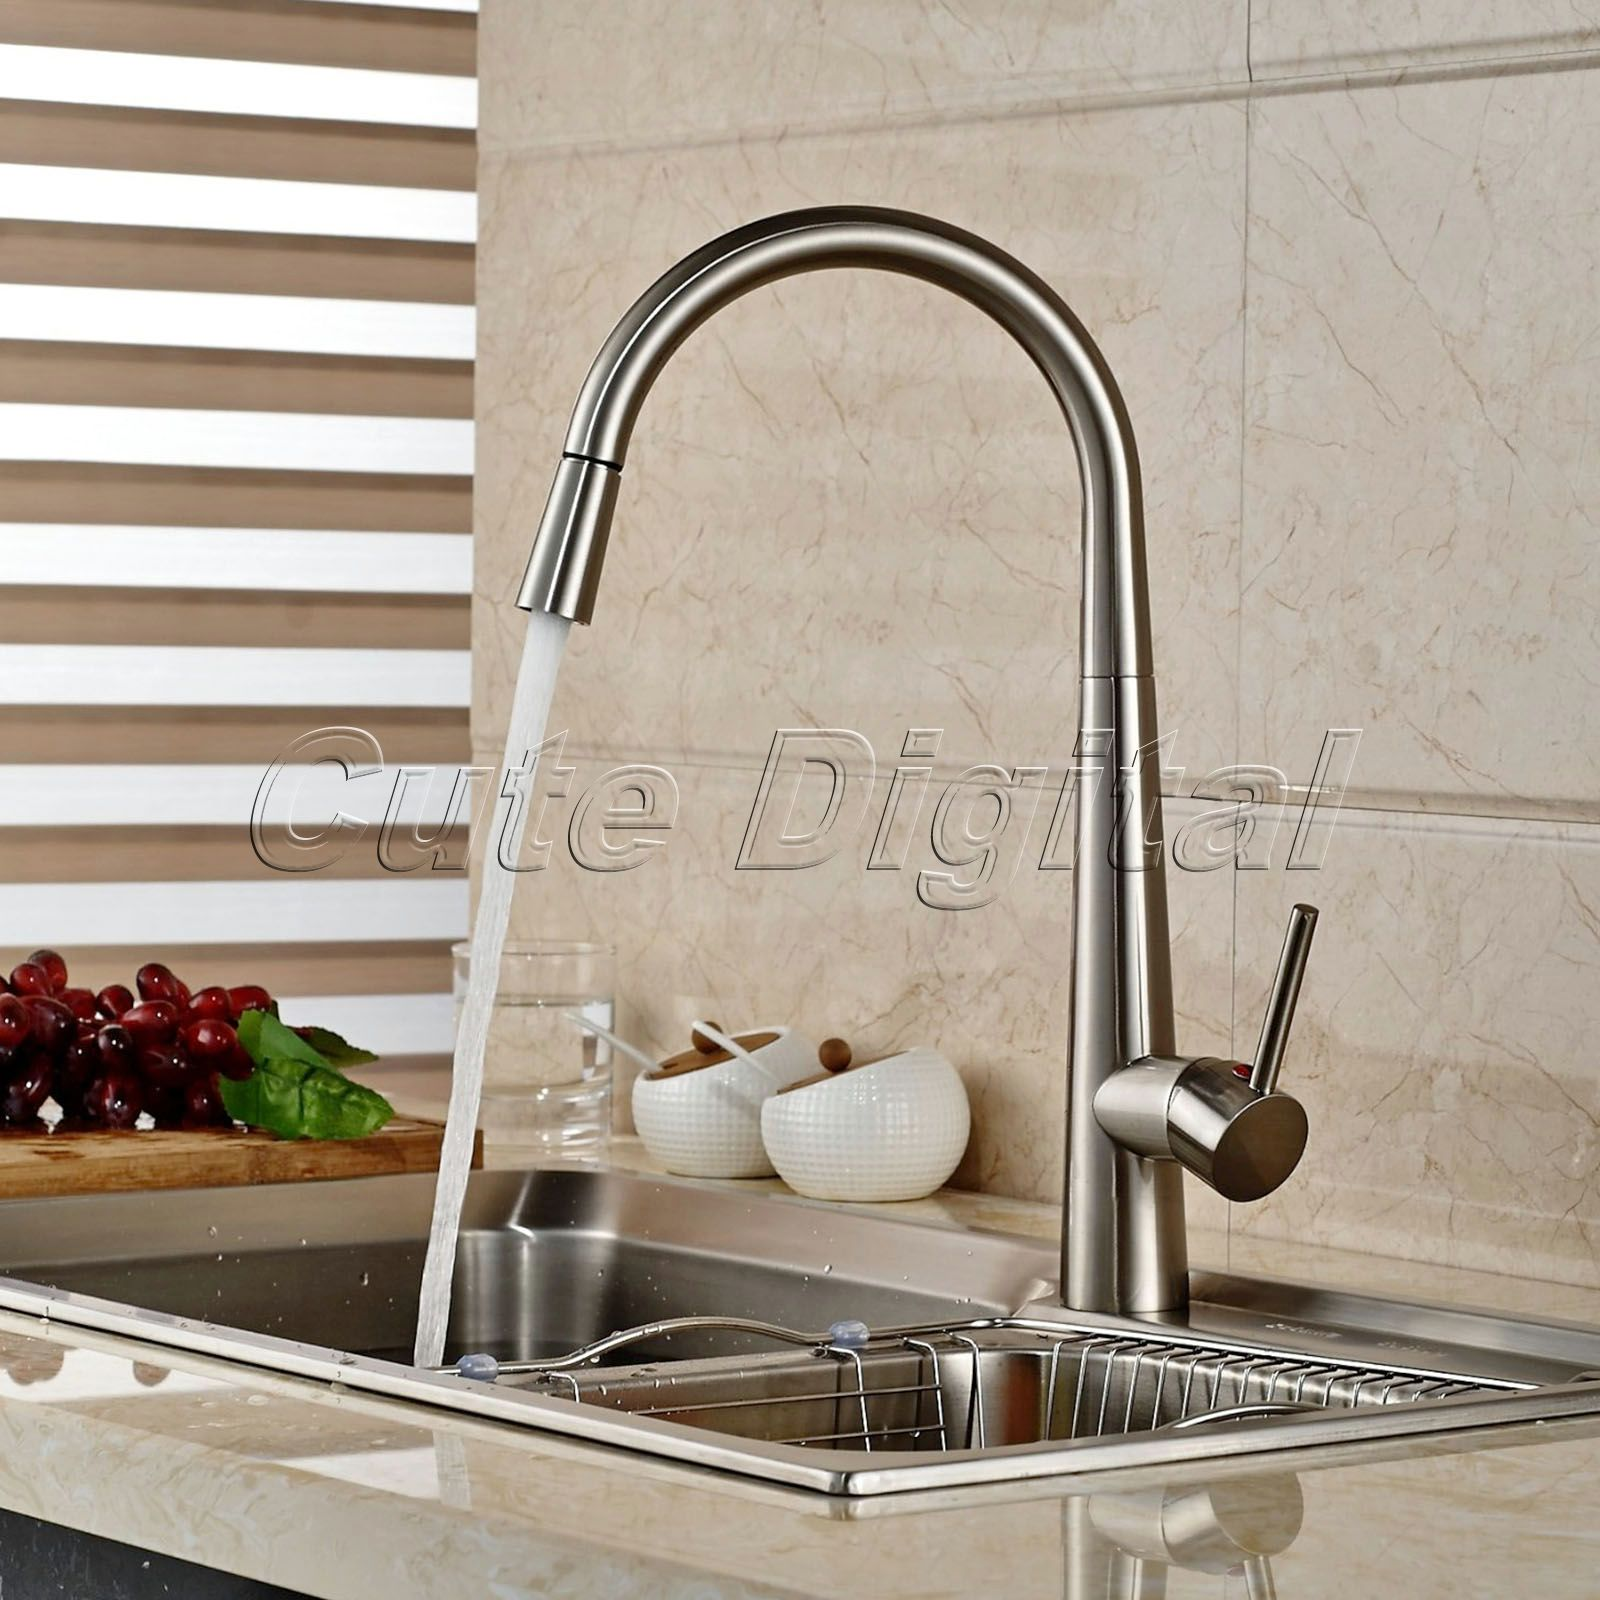 aliexpress com buy brass kitchen faucet swivel spout brushed aliexpress com buy brass kitchen faucet swivel spout brushed nickel kitchen sink mixer tap pull out spray swivel spout vessel faucet deck mounted from